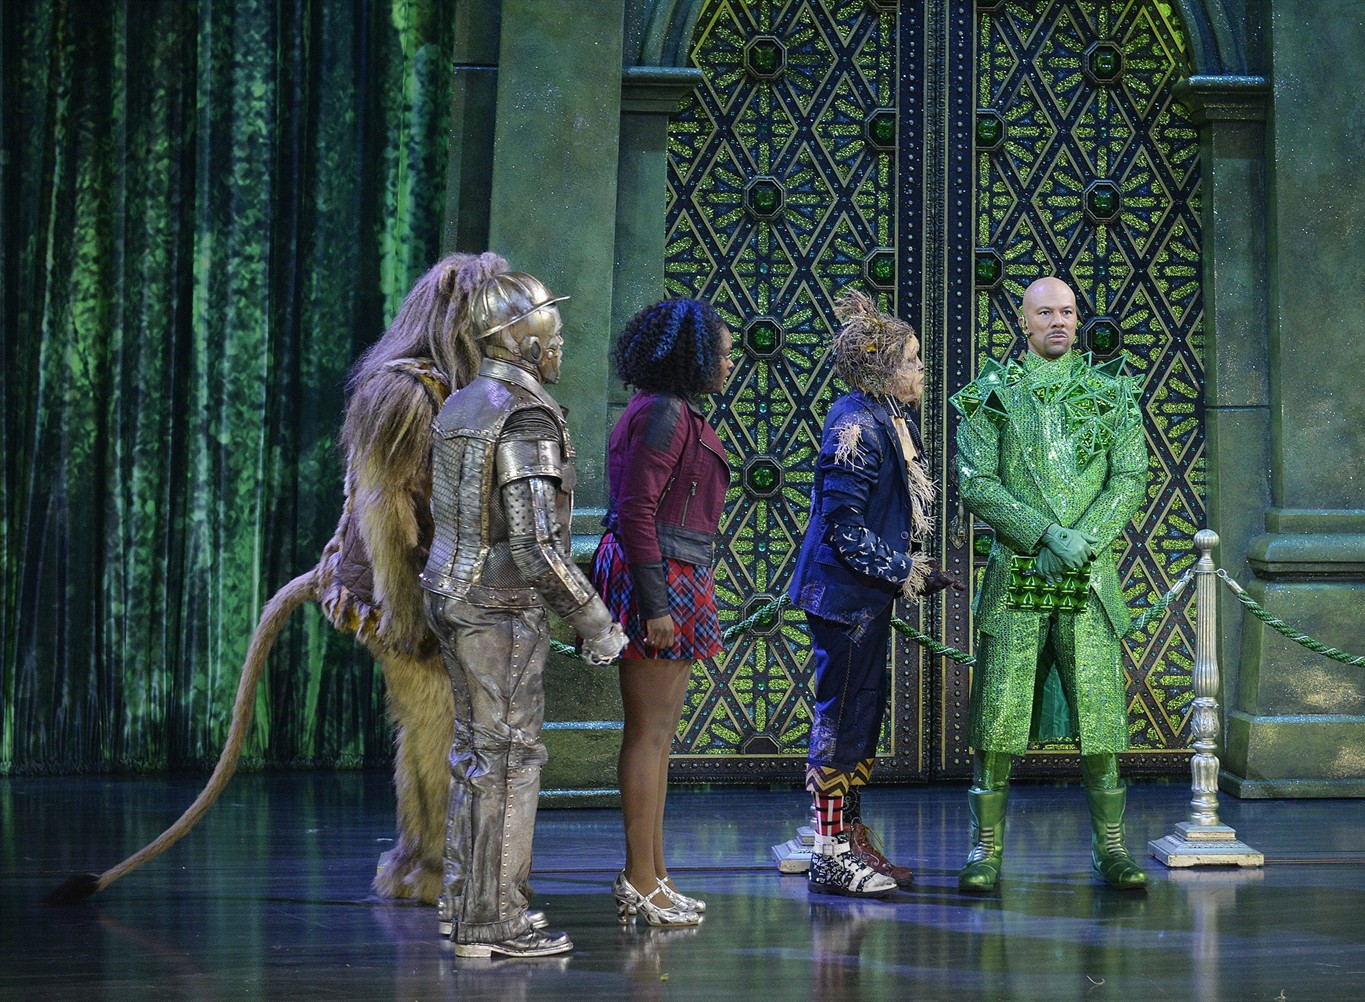 NBC gets 11 million viewers for live production of 'The Wiz